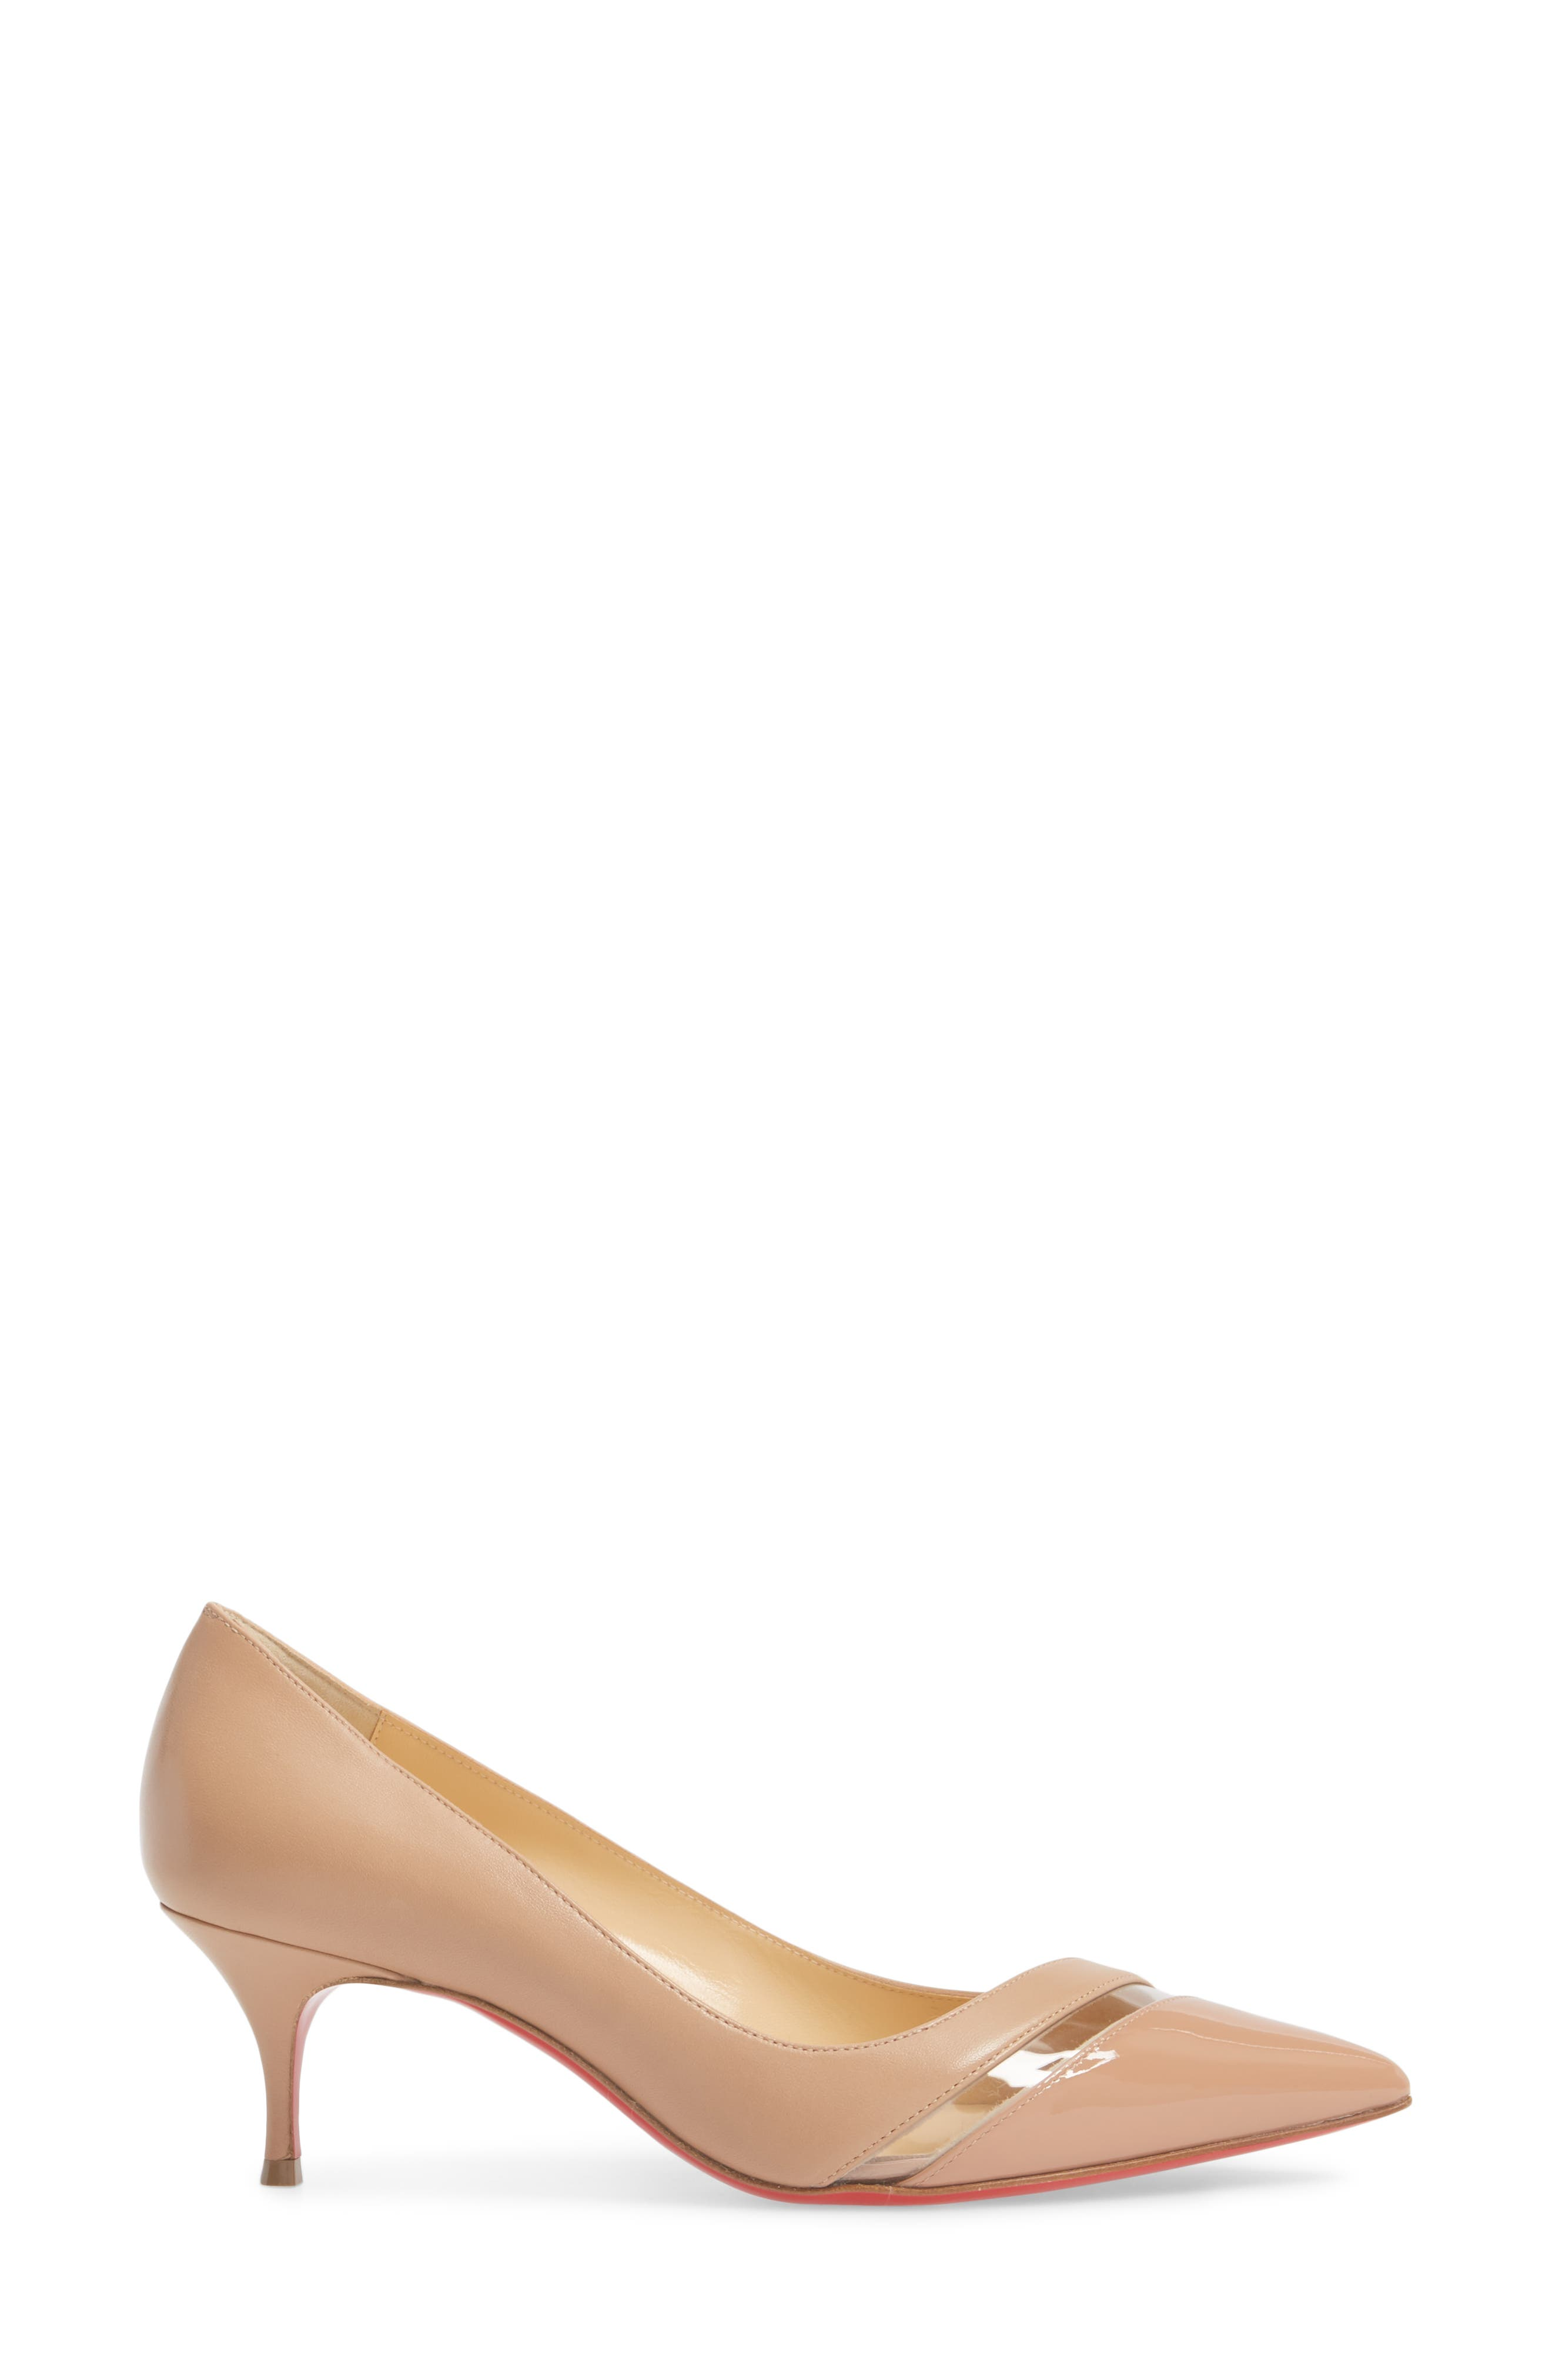 17th Floor Pointy Toe Pump,                             Alternate thumbnail 3, color,                             Nude